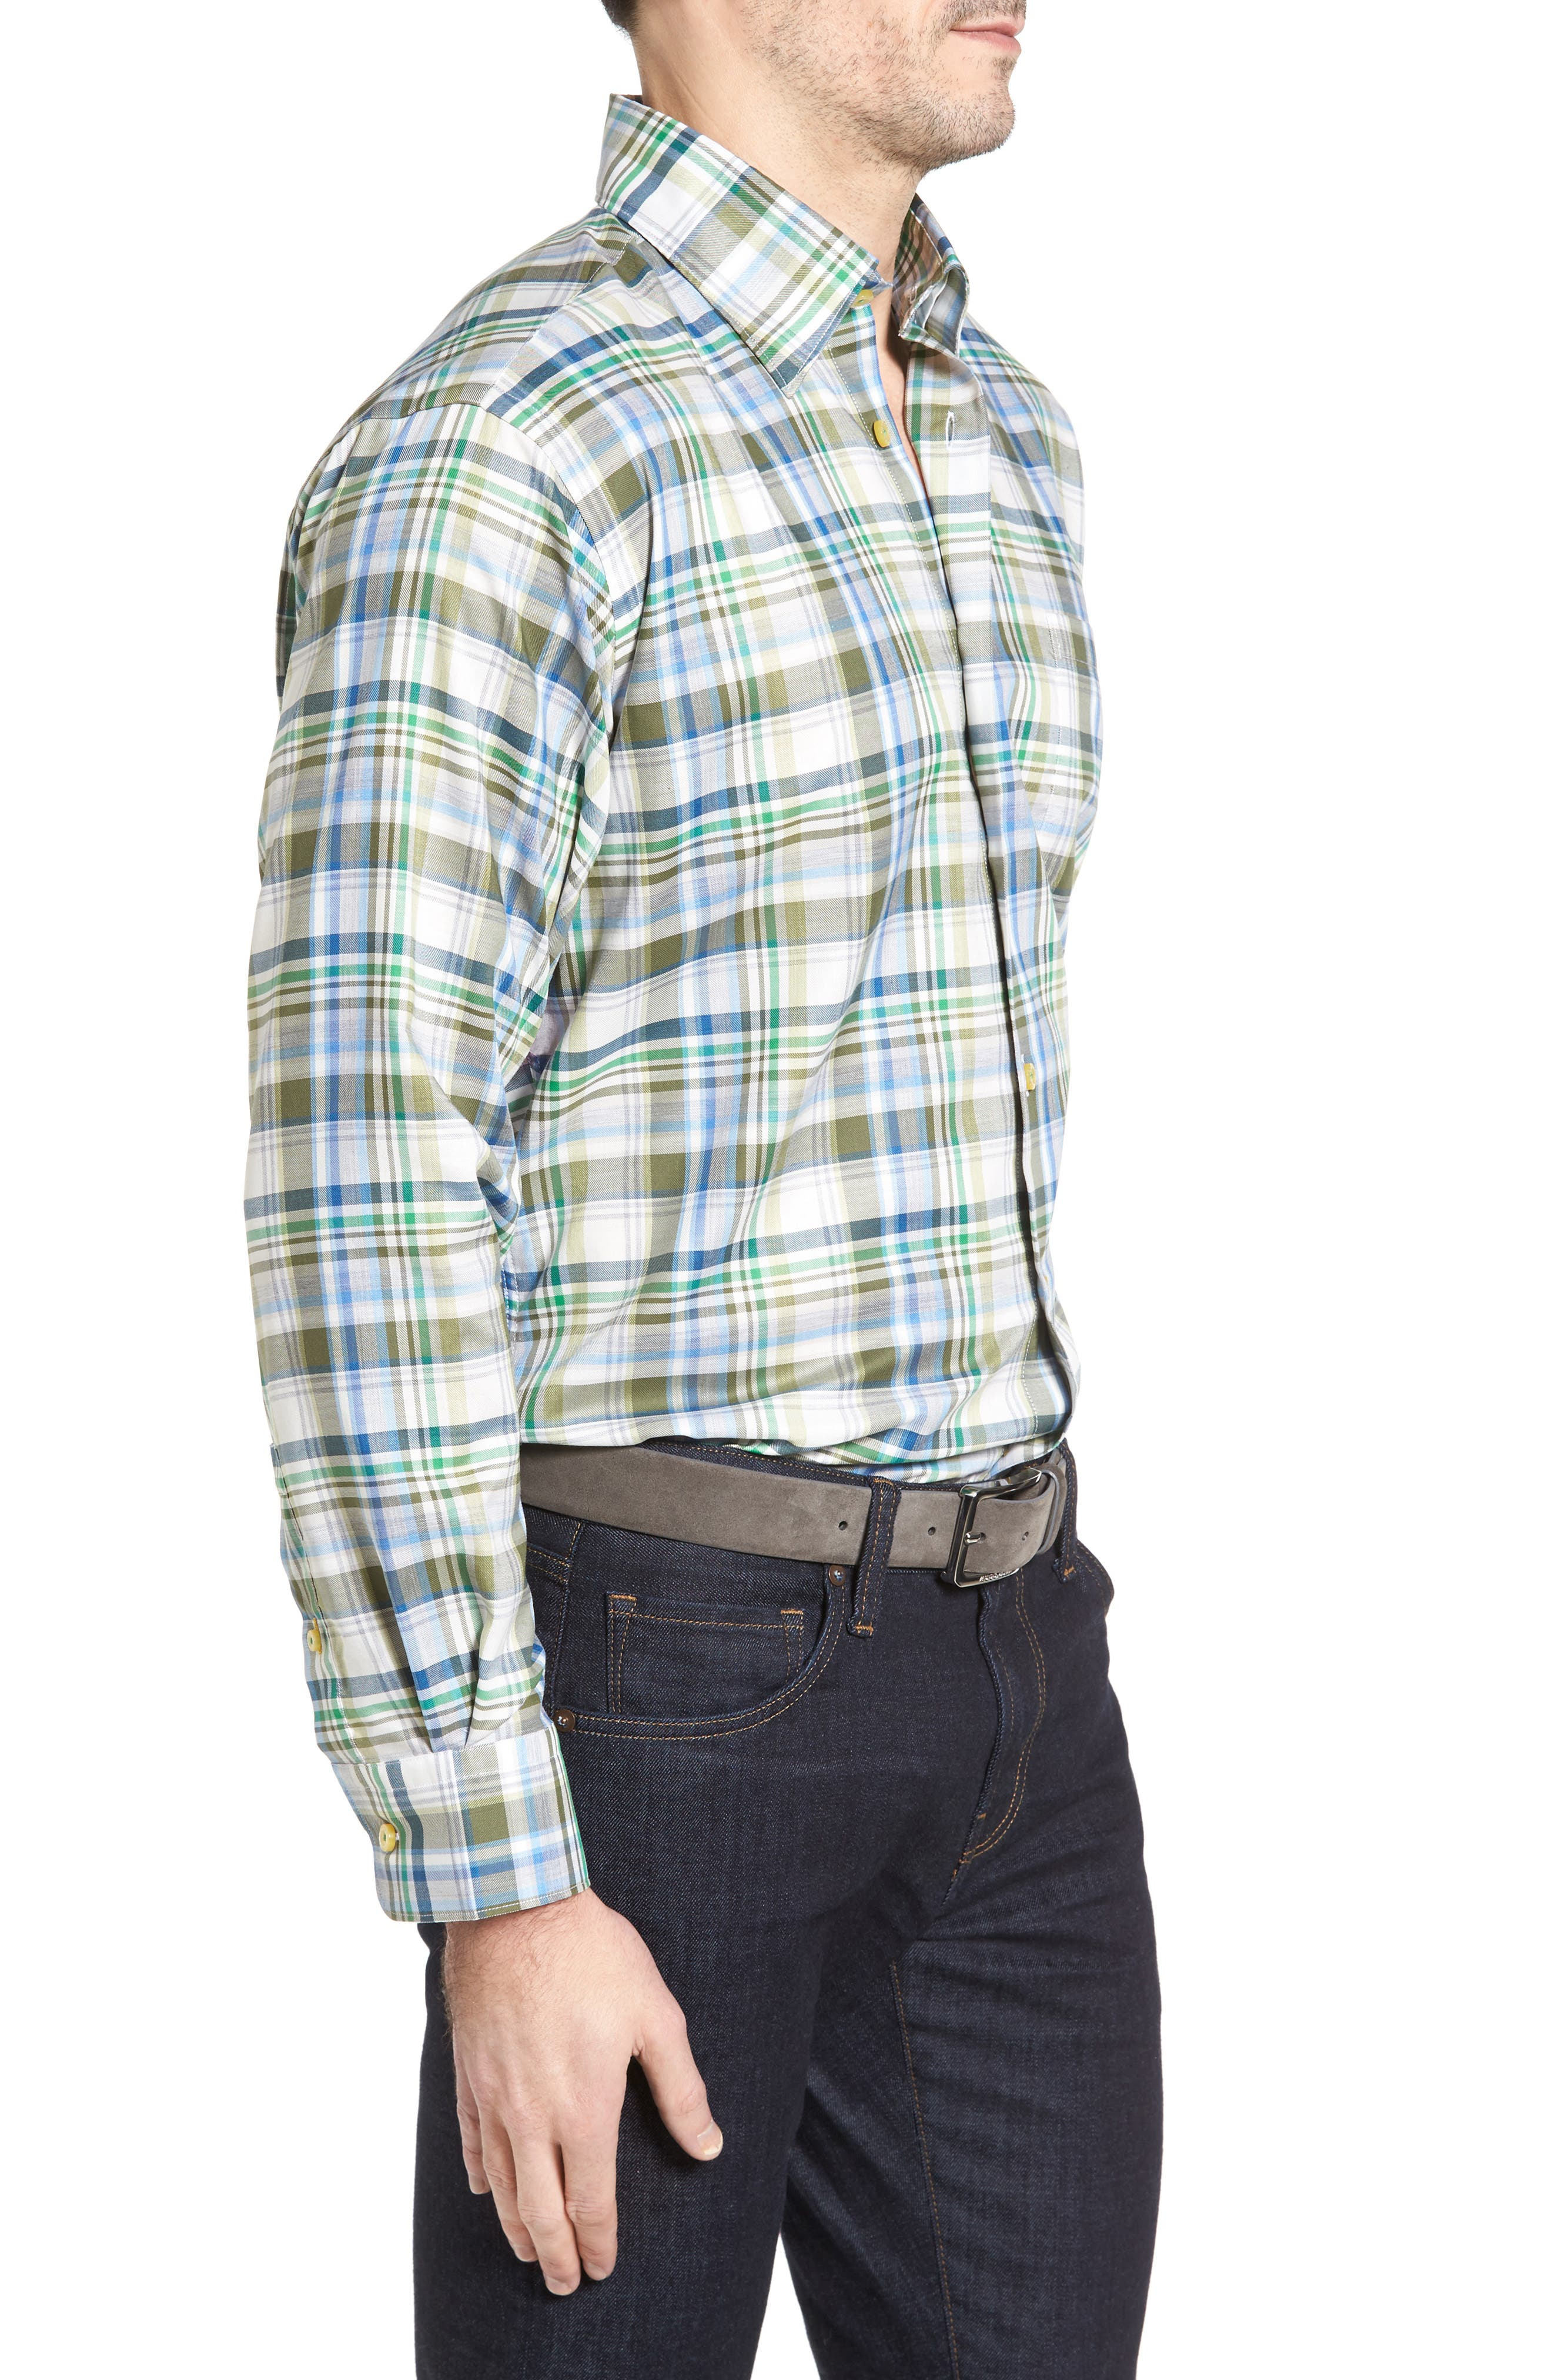 Anderson Classic Fit Plaid Micro Twill Sport Shirt,                             Alternate thumbnail 3, color,                             Green